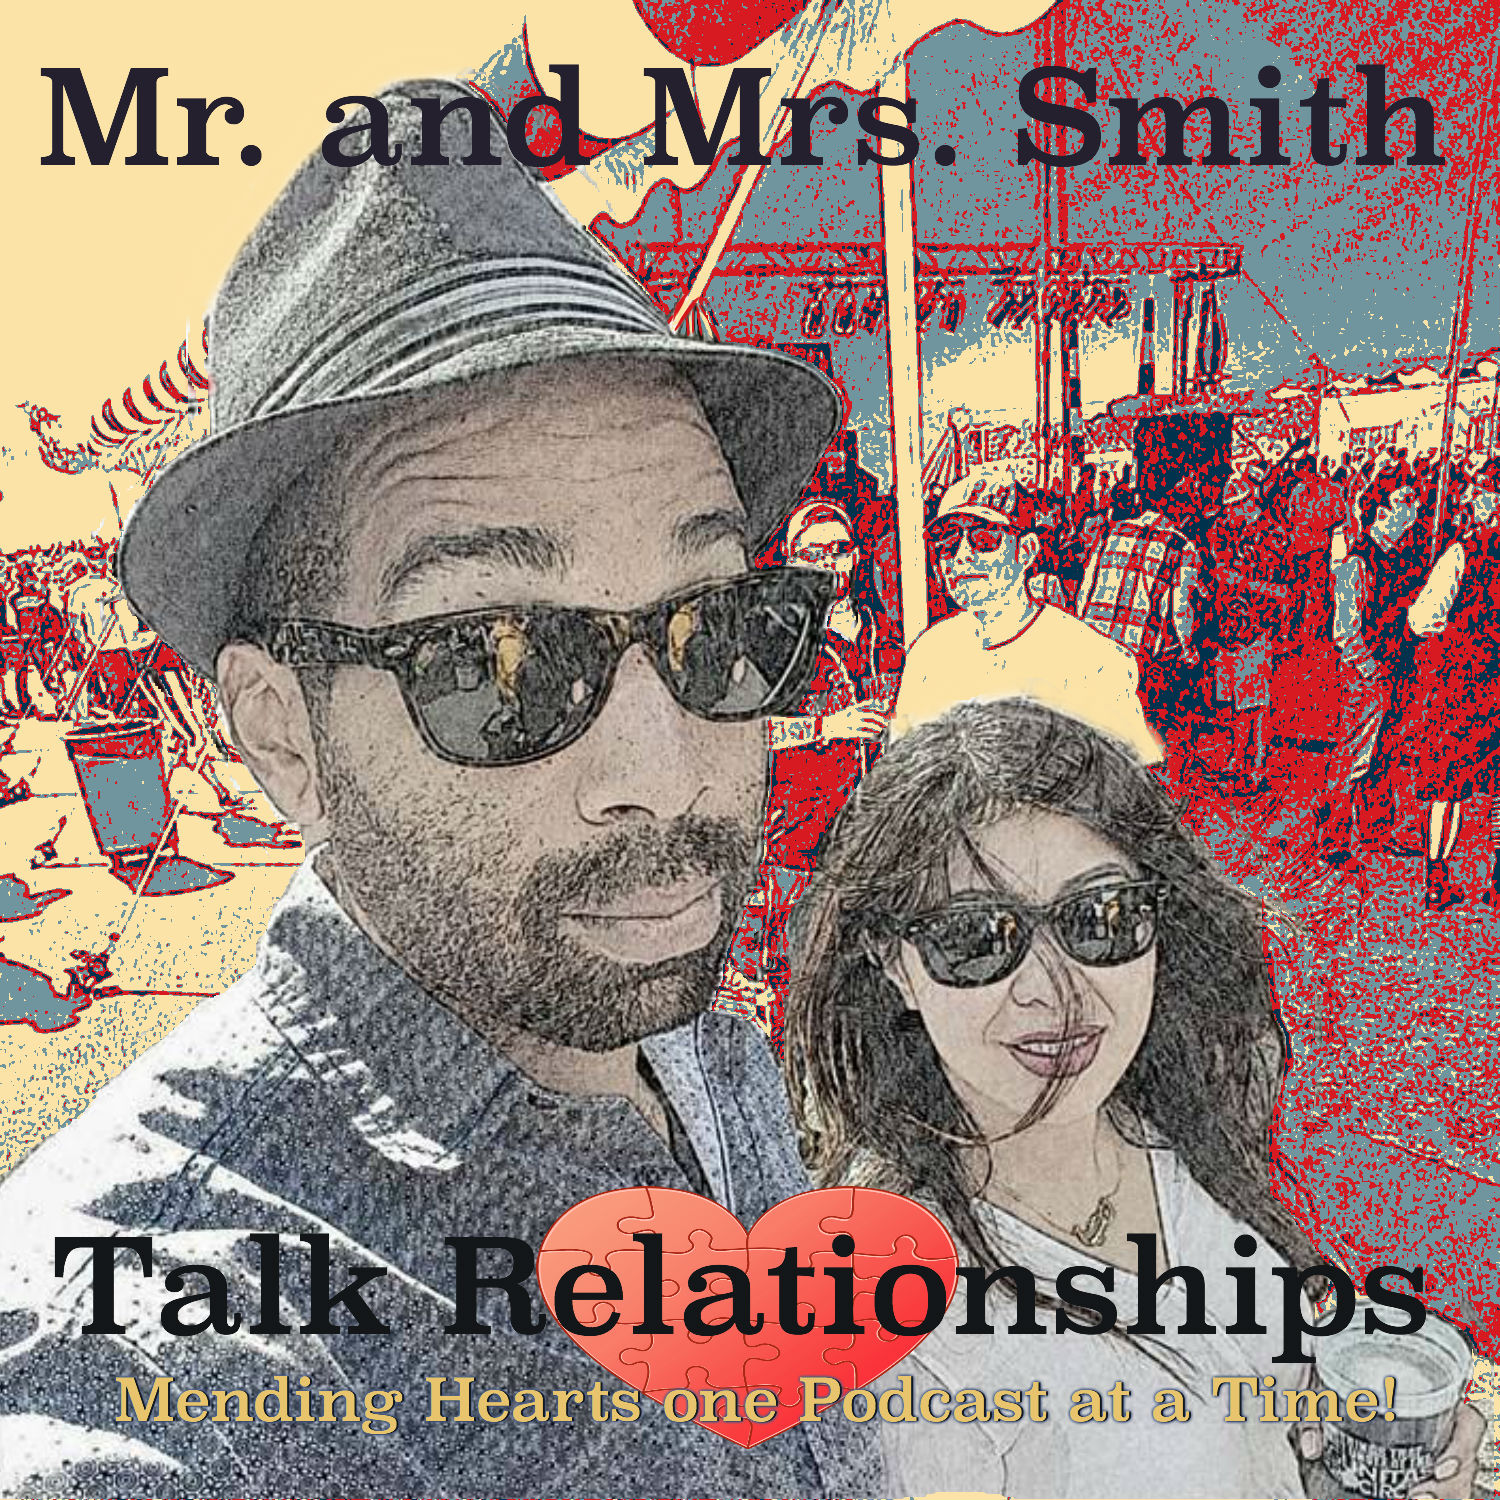 Mr. and Mrs. Smith Talk Relationships - Mr. and Mrs. Smith Comedy